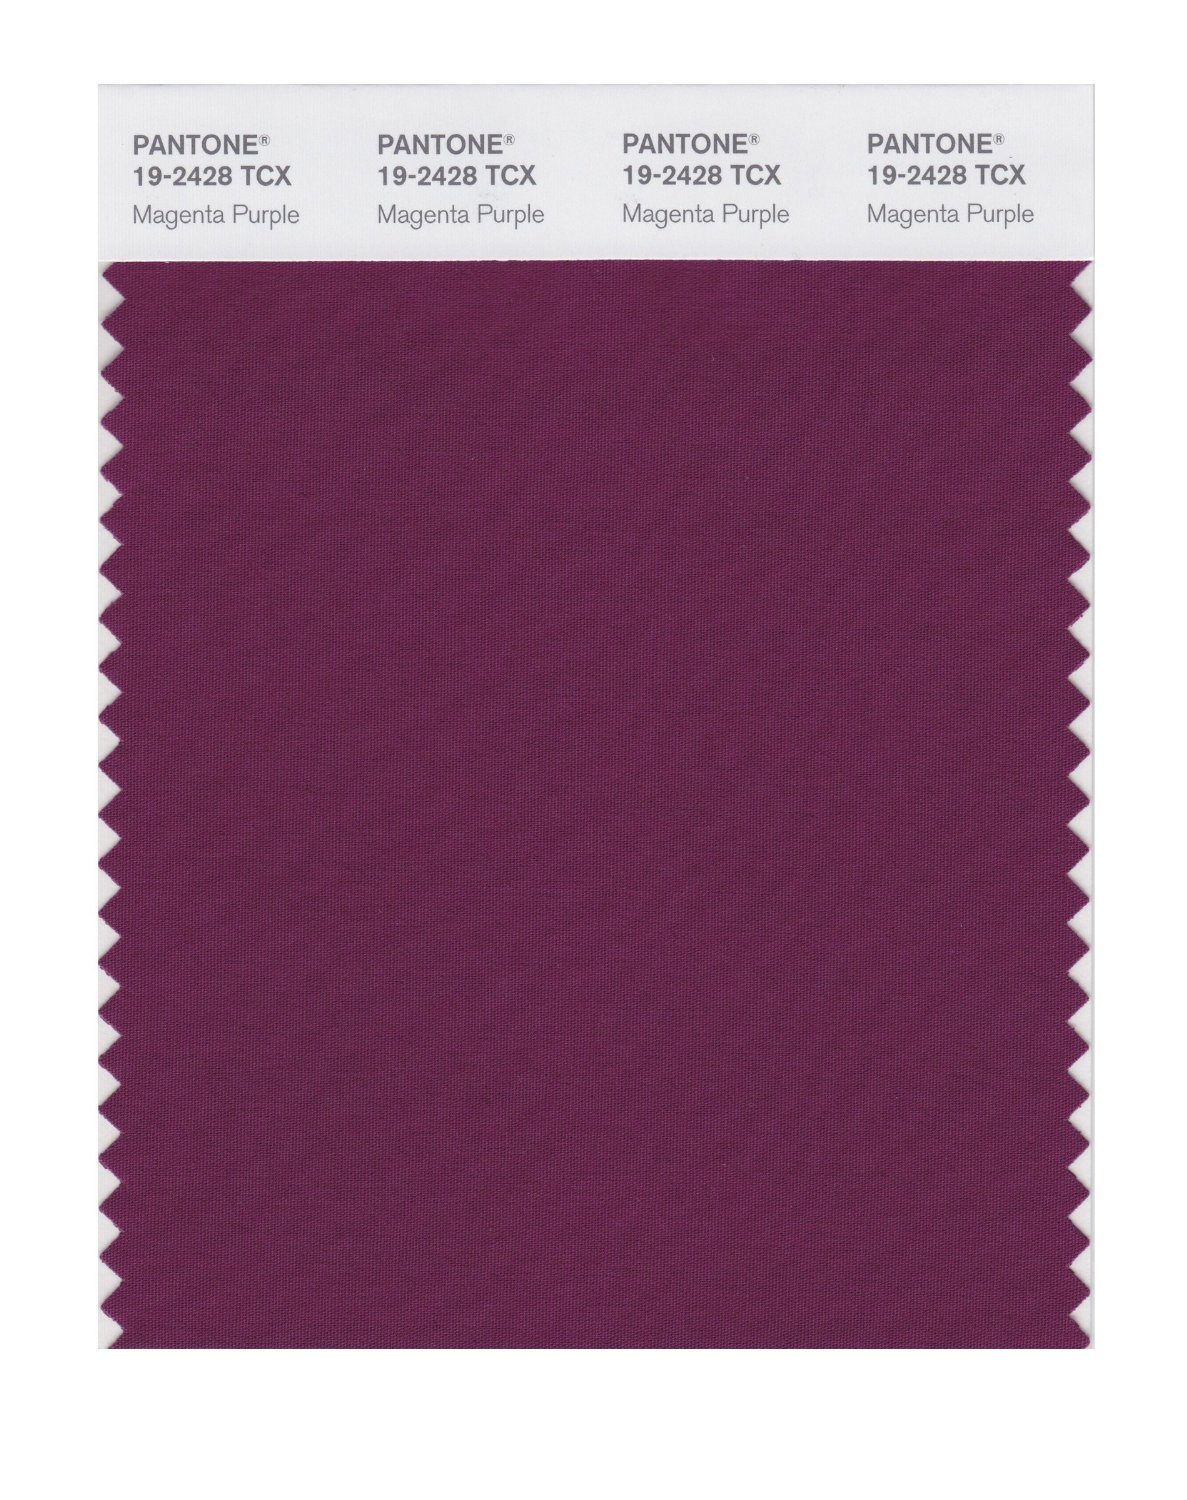 Pantone Smart Swatch 19-2428 Magenta Purple